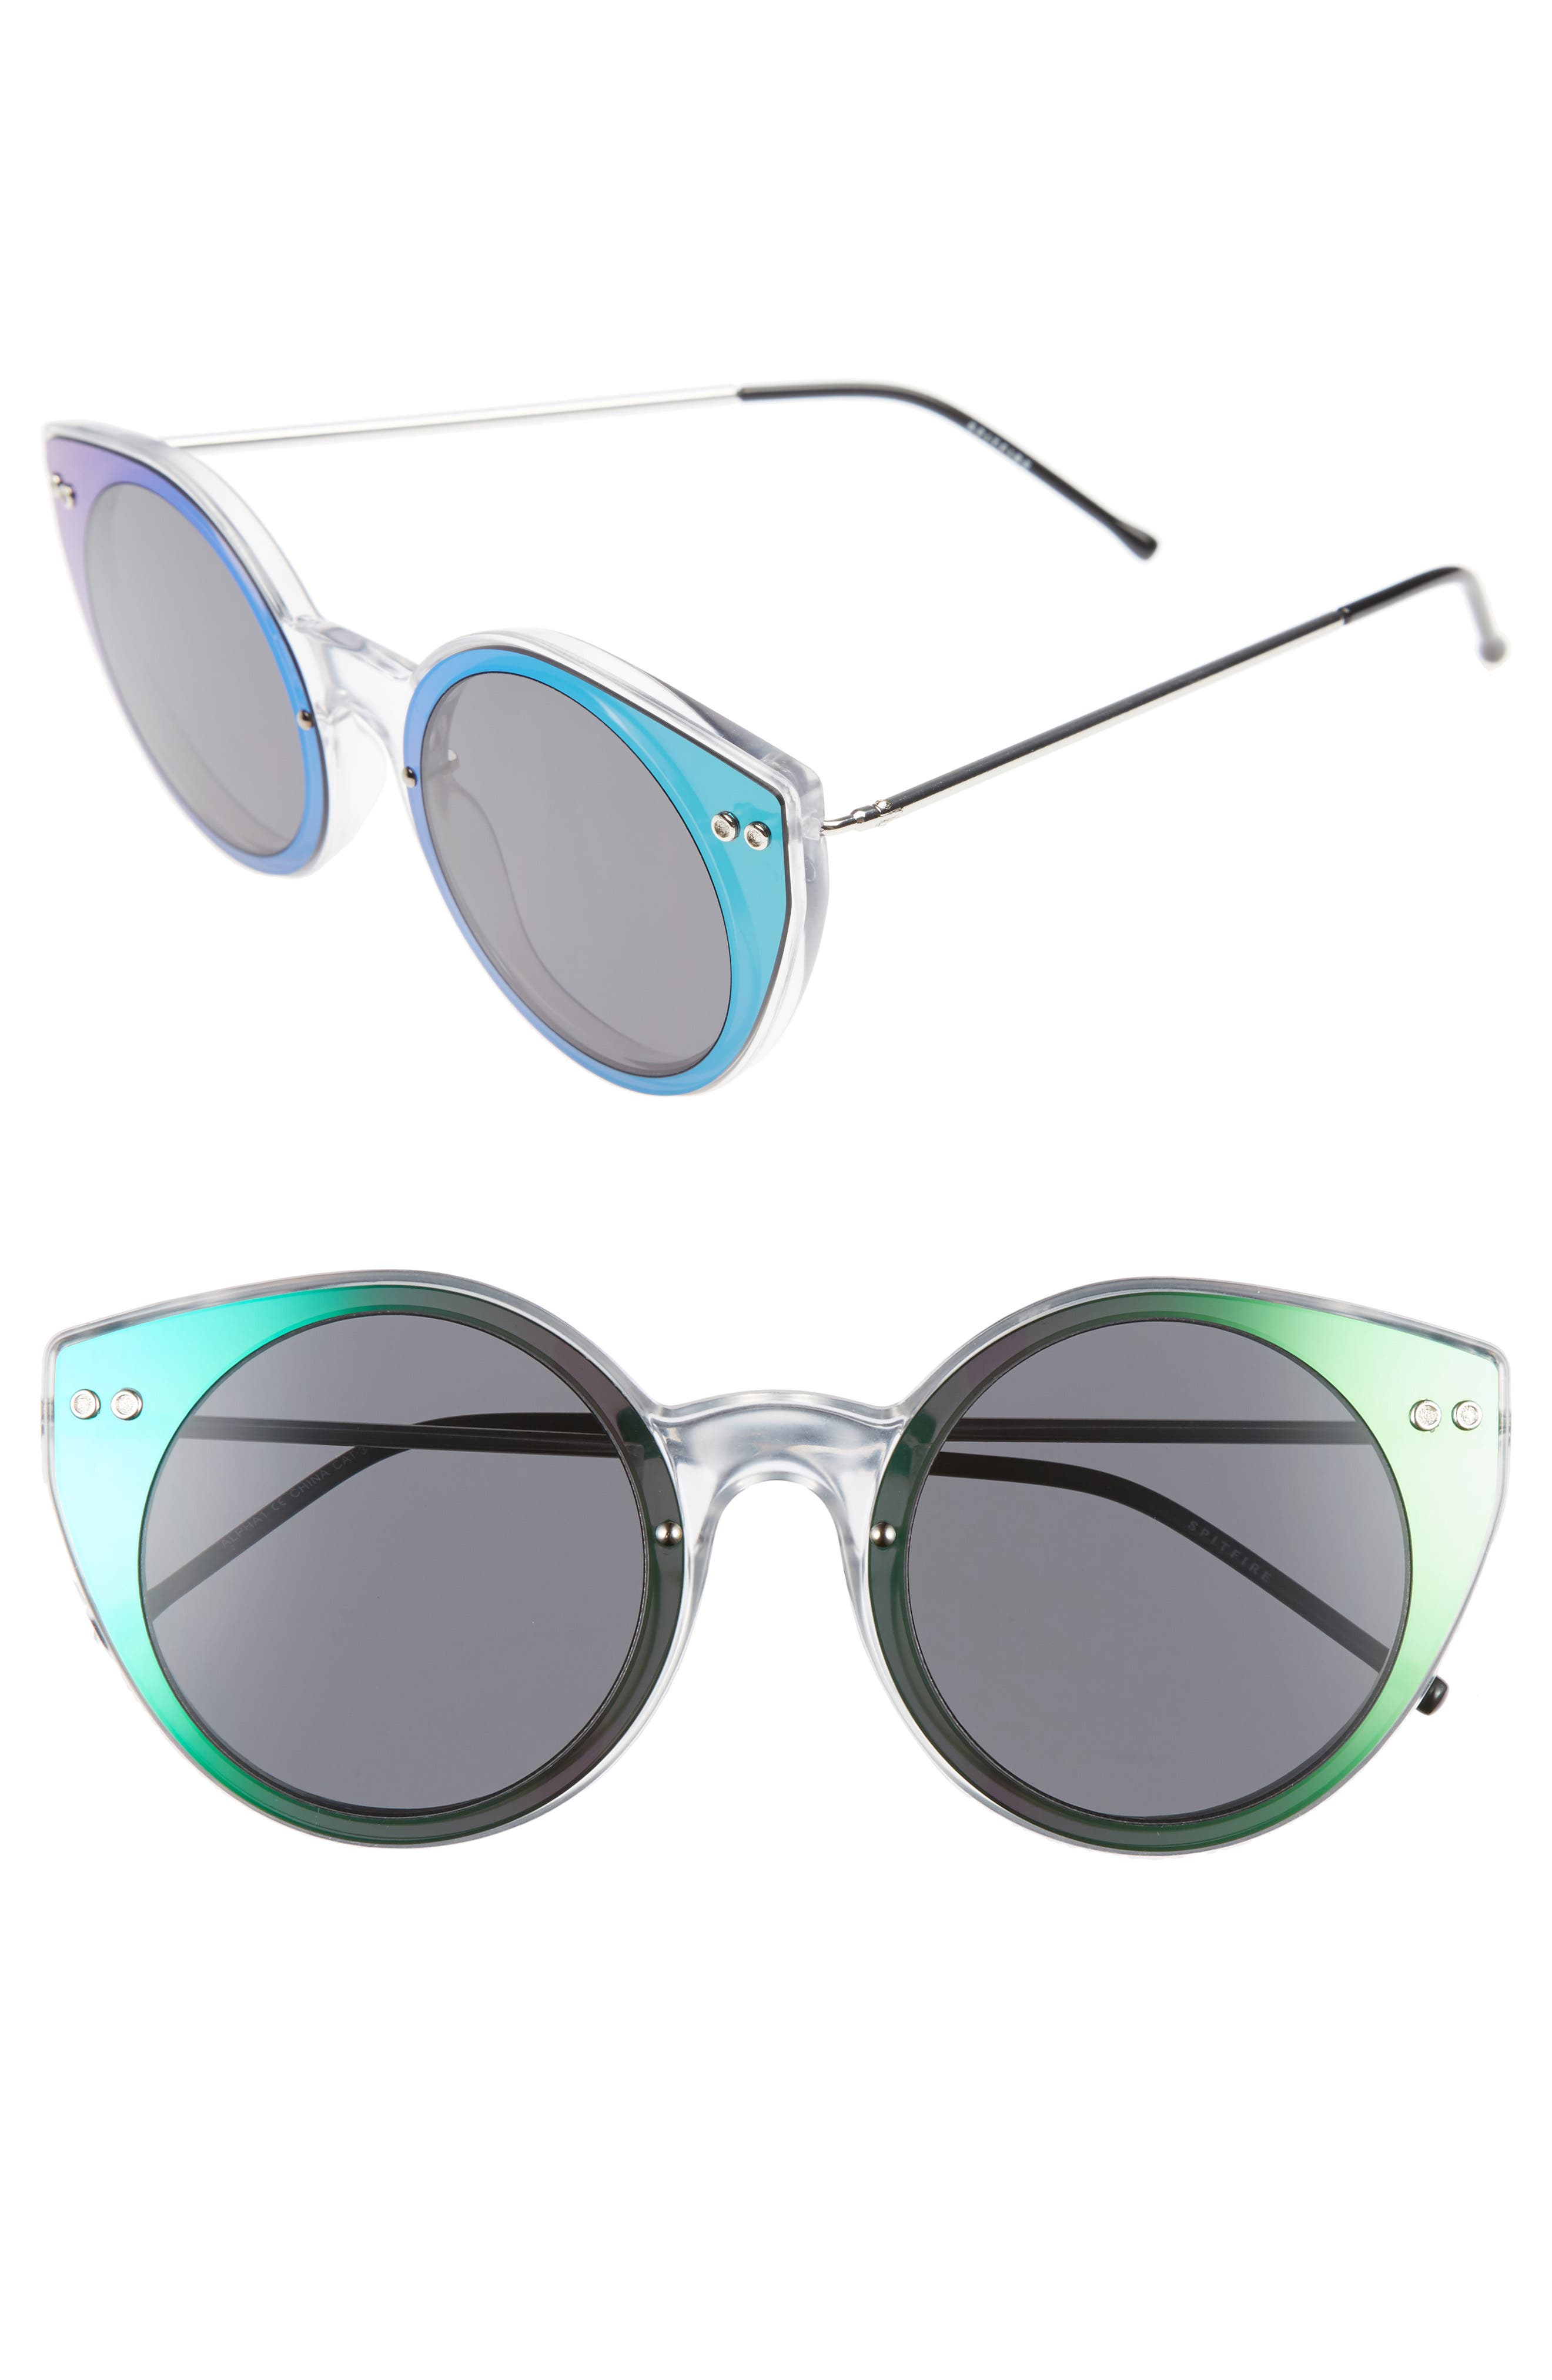 Main Image - Spitfire Alpha 1 60mm Mirrored Sunglasses